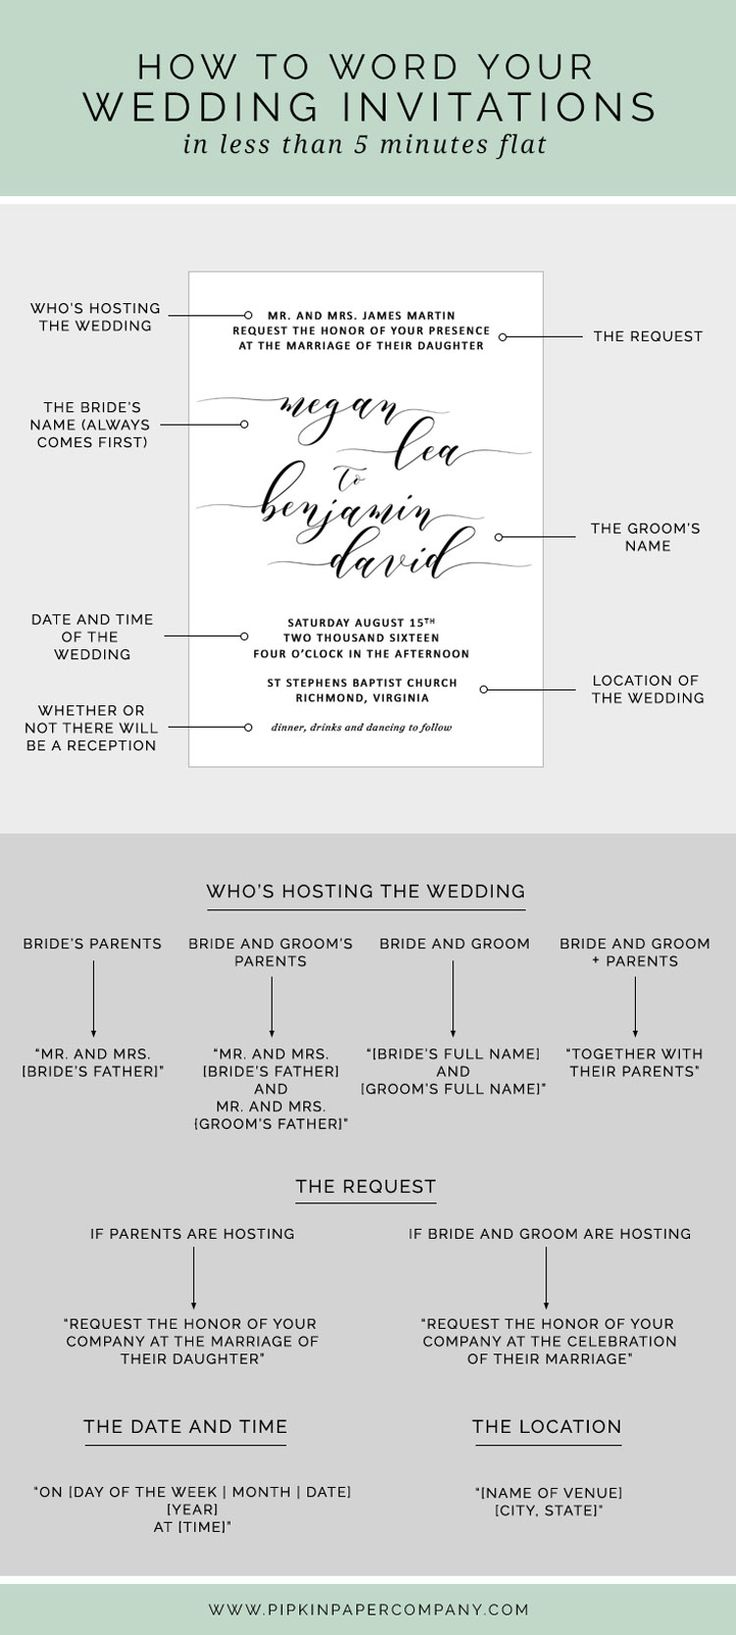 best 25 wedding invitation wording ideas on pinterest how to write wedding invitations wedding stationery examples and wedding invitation wording - Wedding Invite Examples